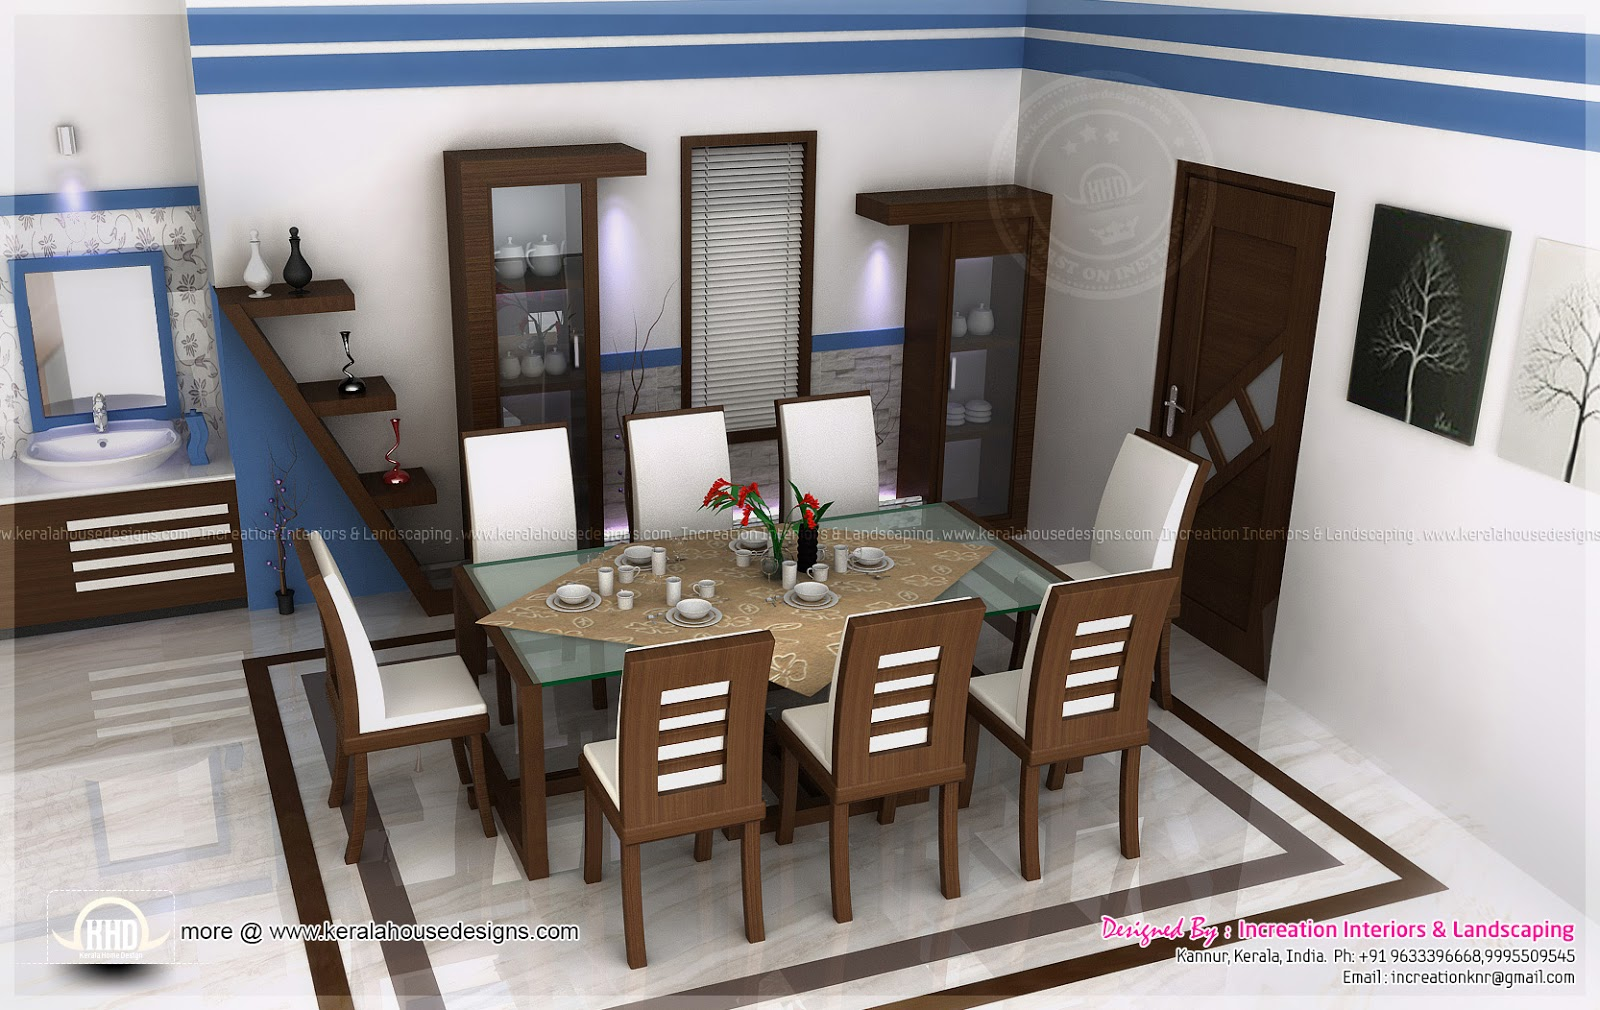 House interior ideas in 3d rendering home kerala plans Dining room designs 2014